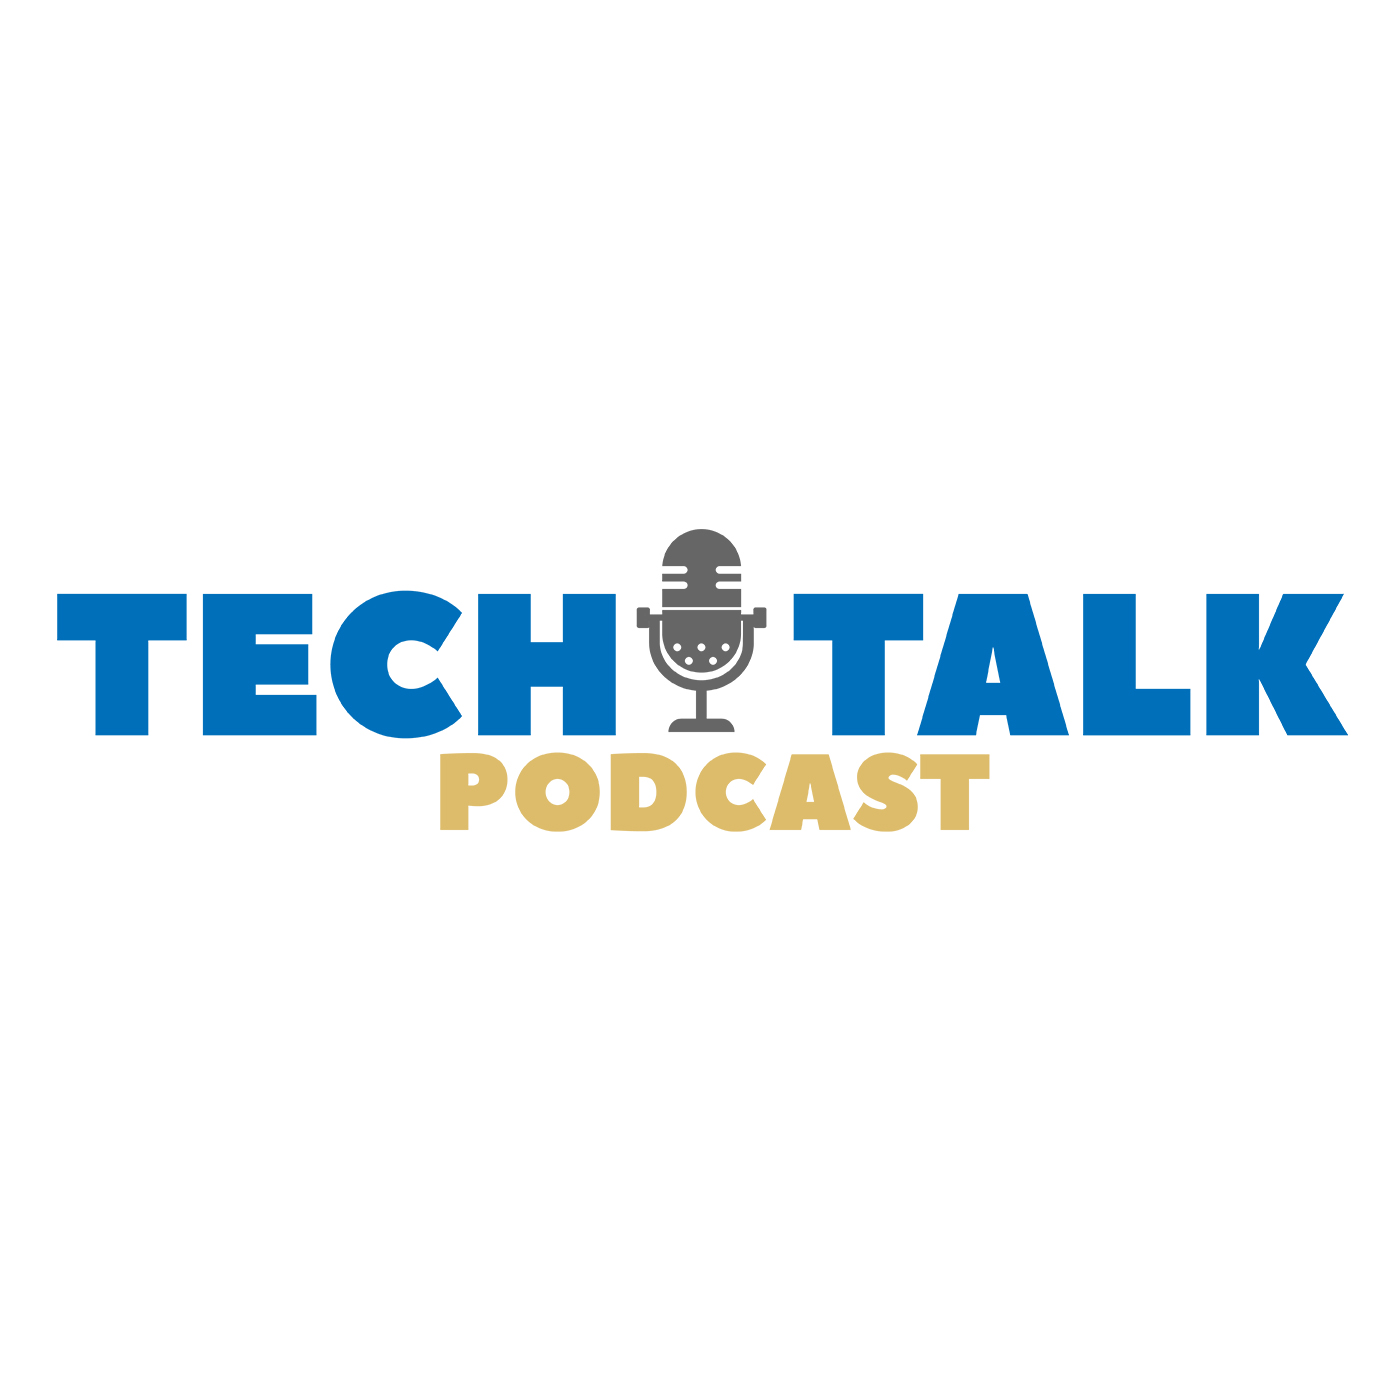 Tech Talk Podcast with Noah and Antonio